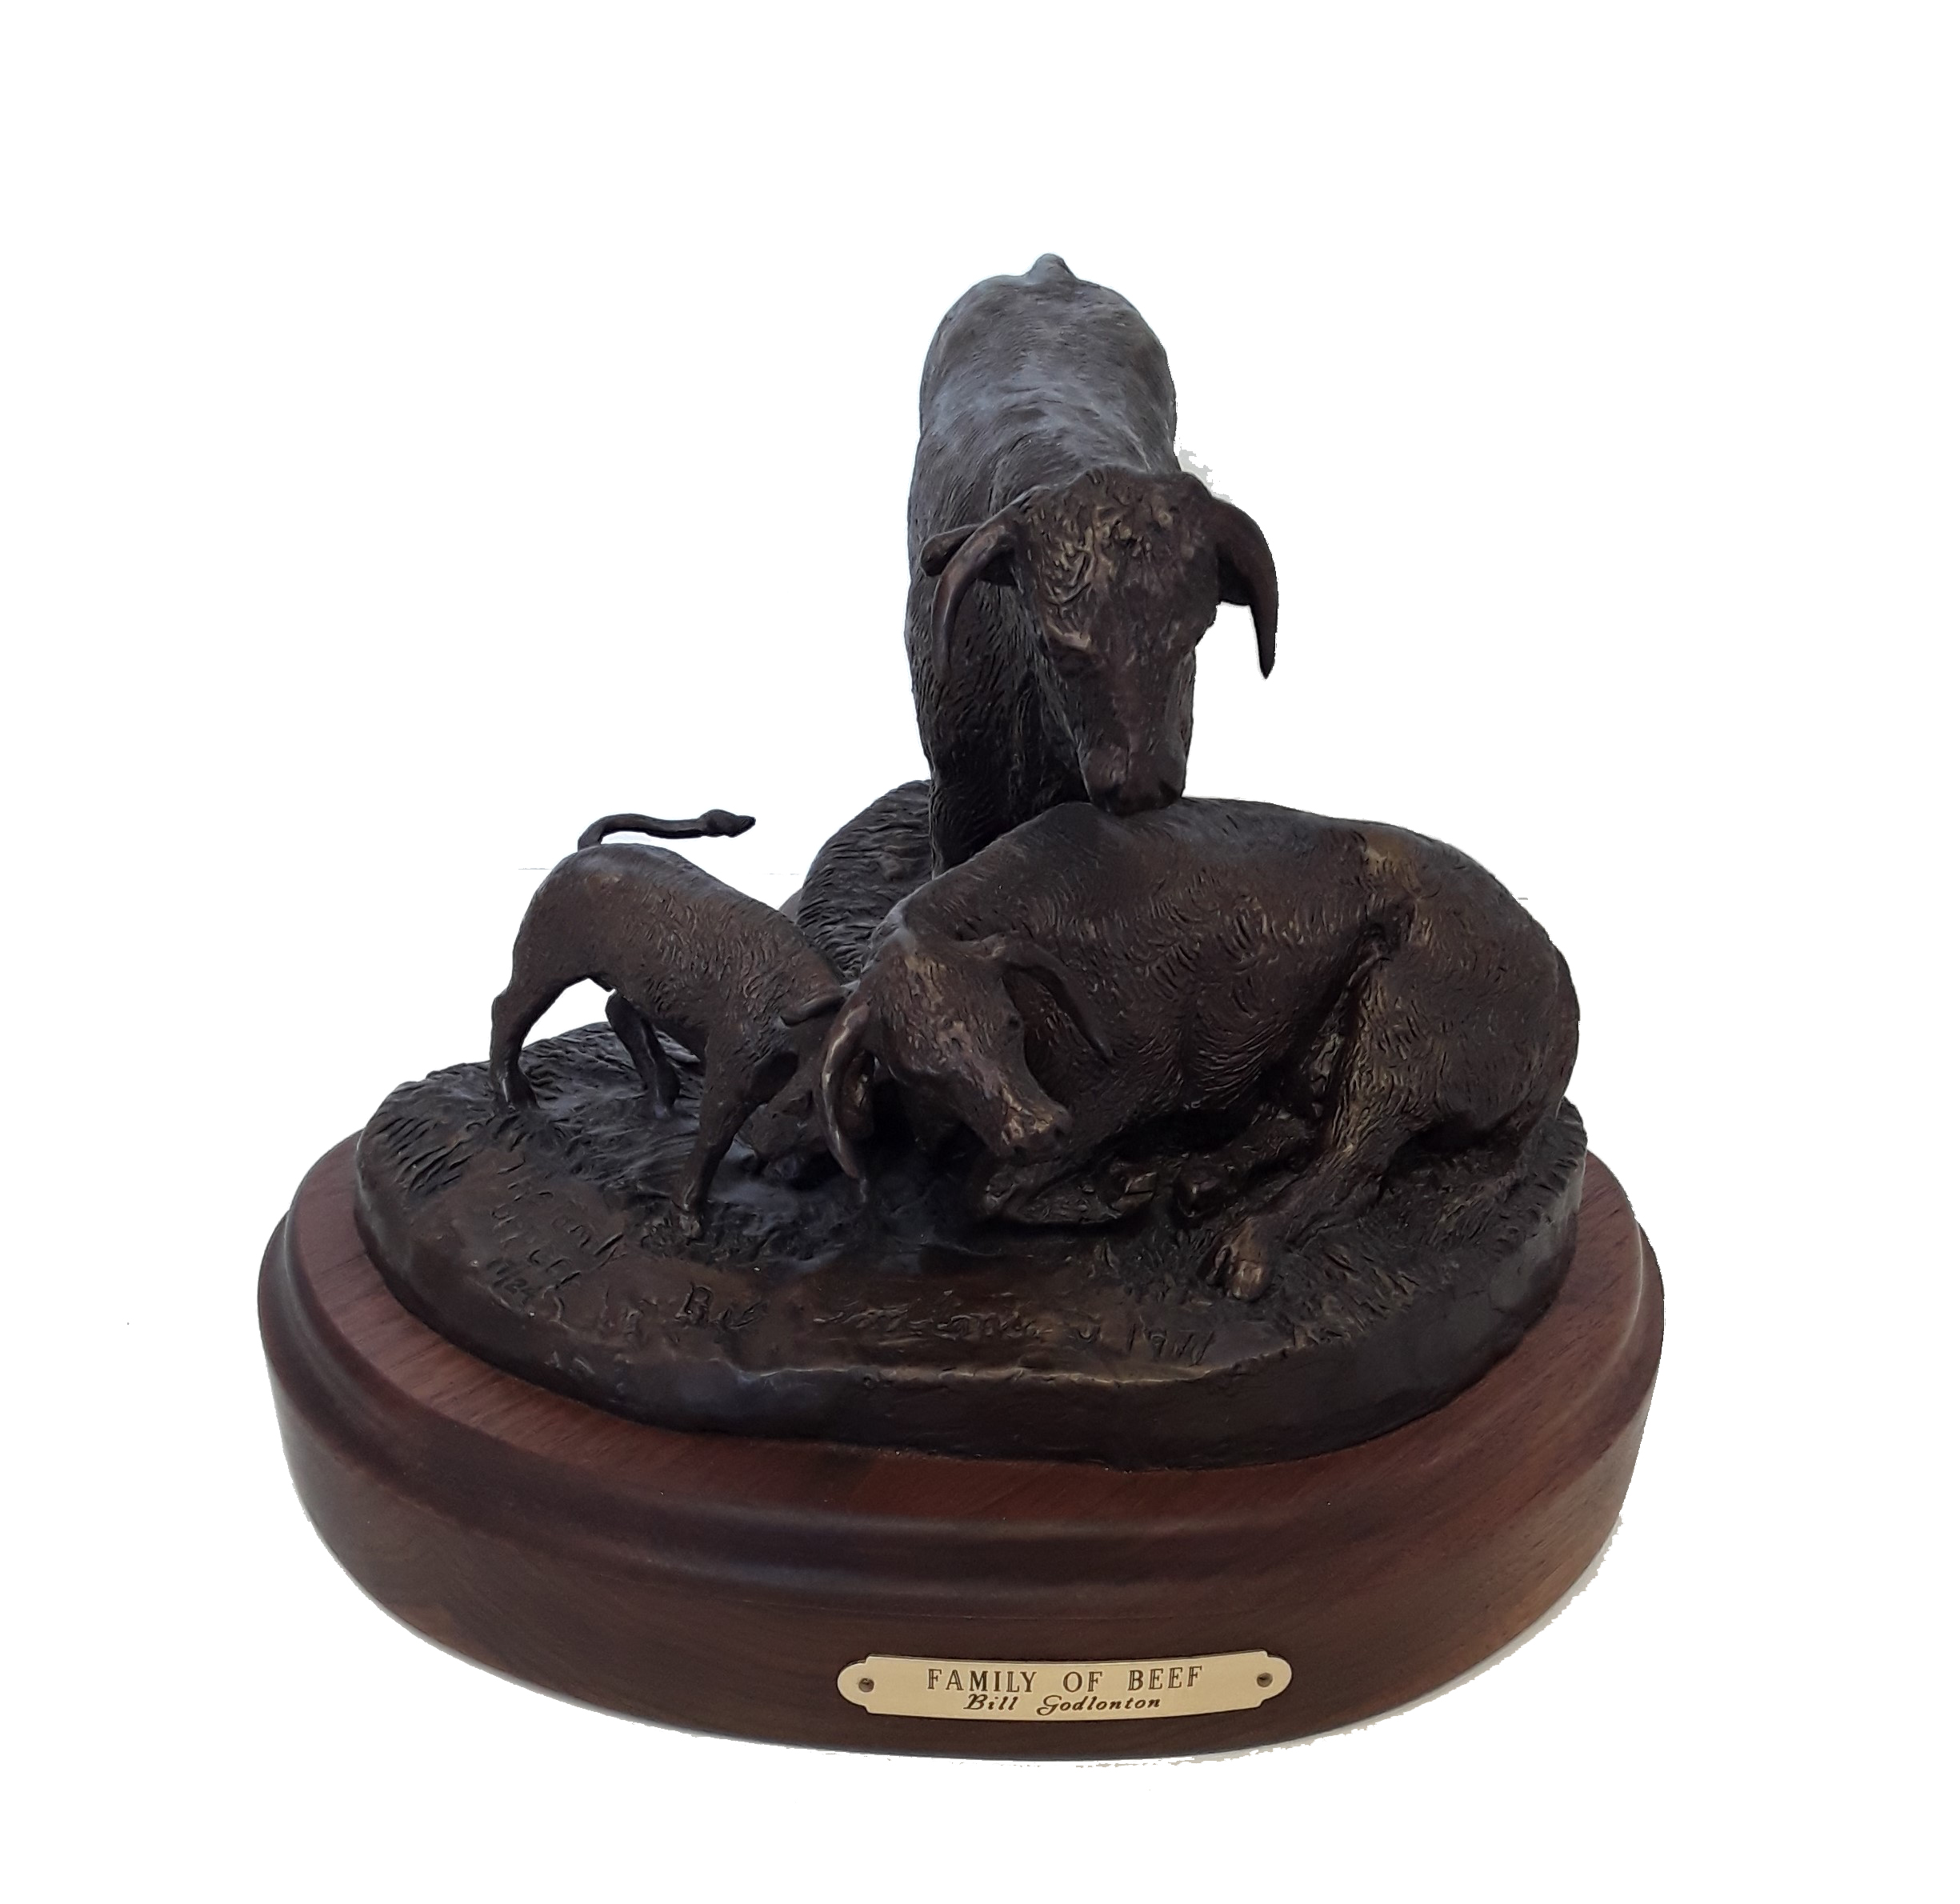 "Bill Godlonton's ""Family Of Beef"" Limited Edition Bronze Sculpture"